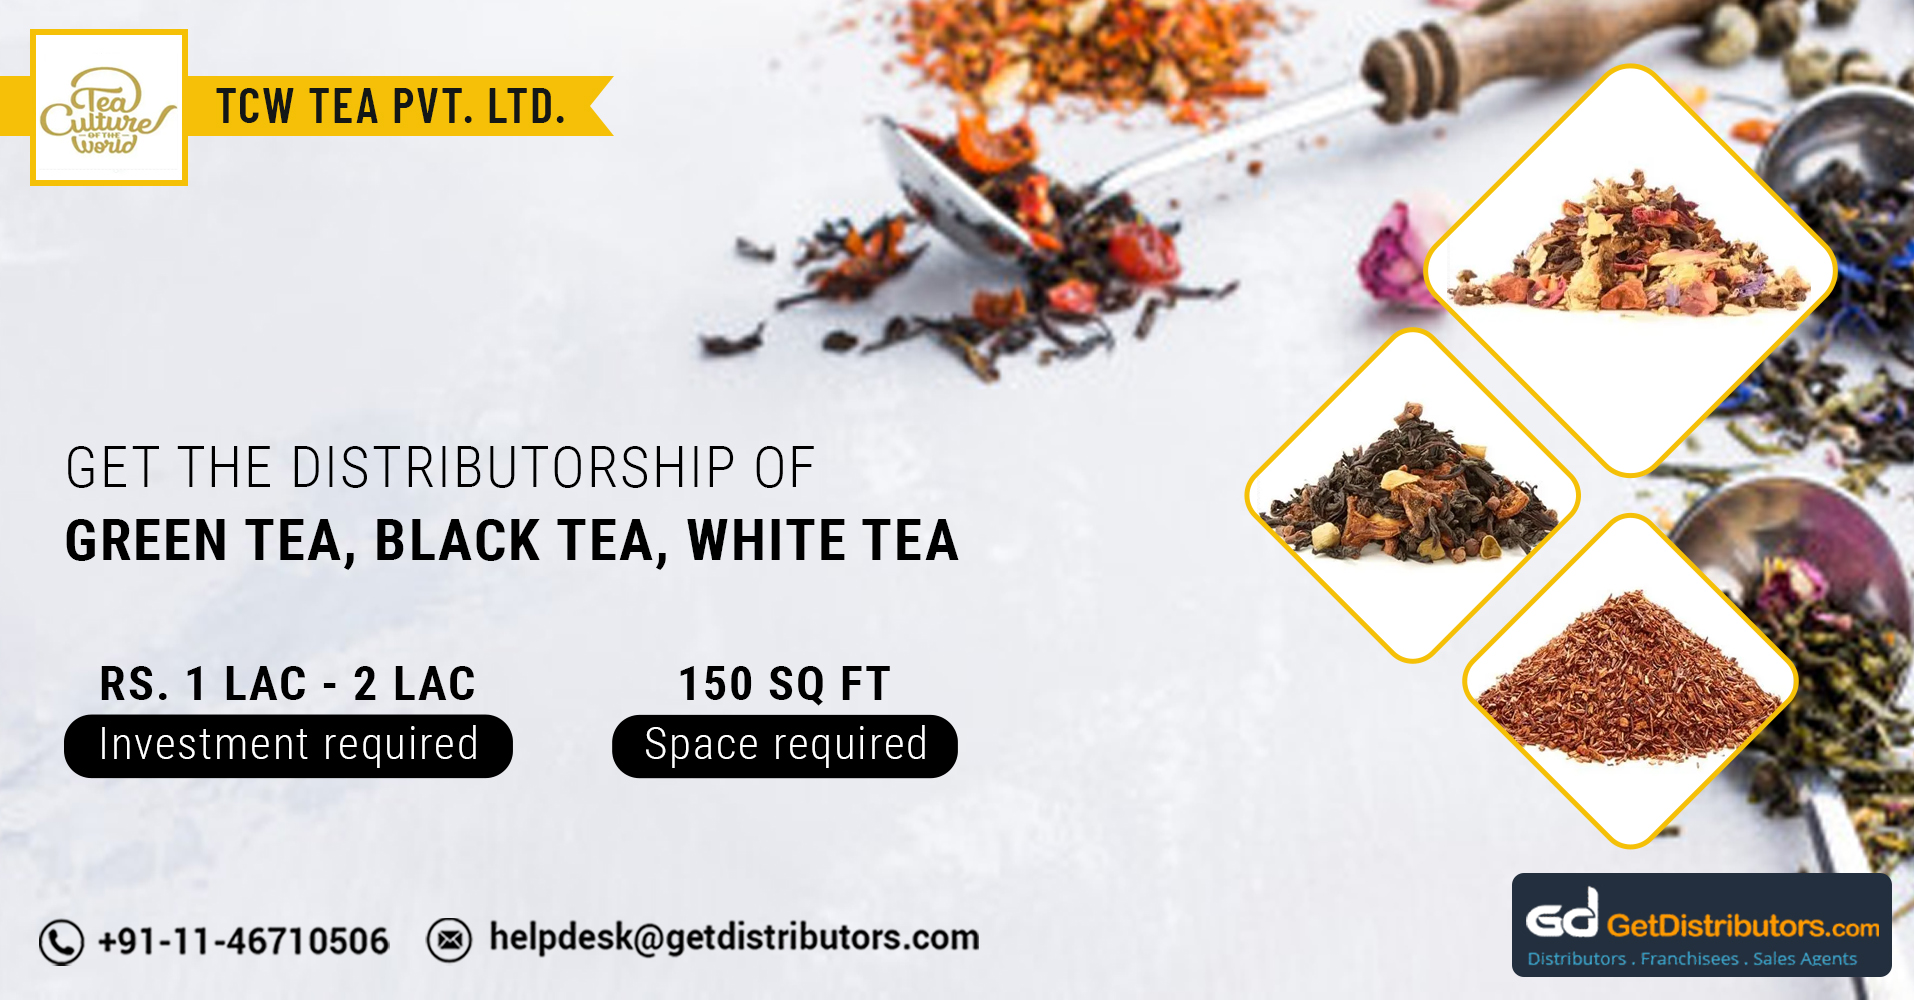 High-Quality Tea Range For Distribution